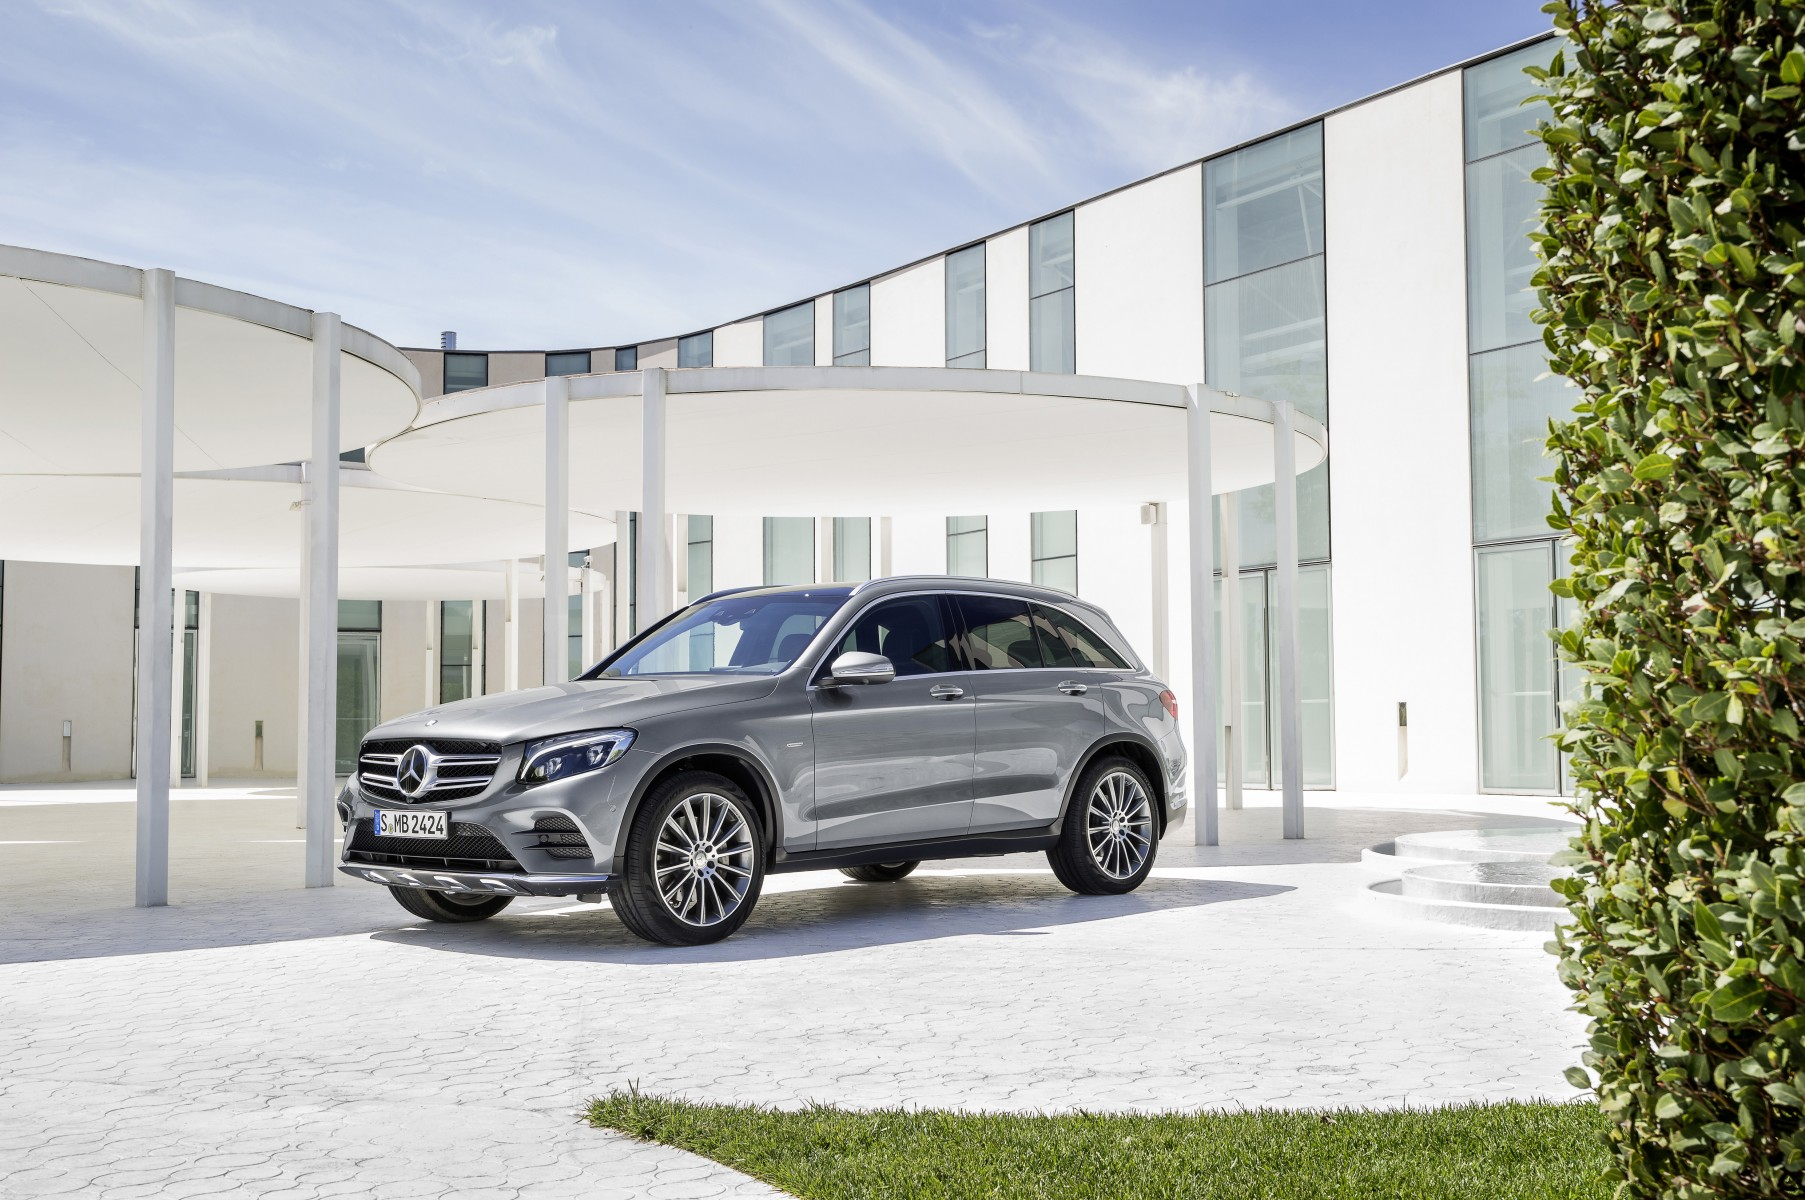 Mercedes-Benz GLC 350 e 4MATIC Edition 1, Selenite Grey, AMG Line, exterior